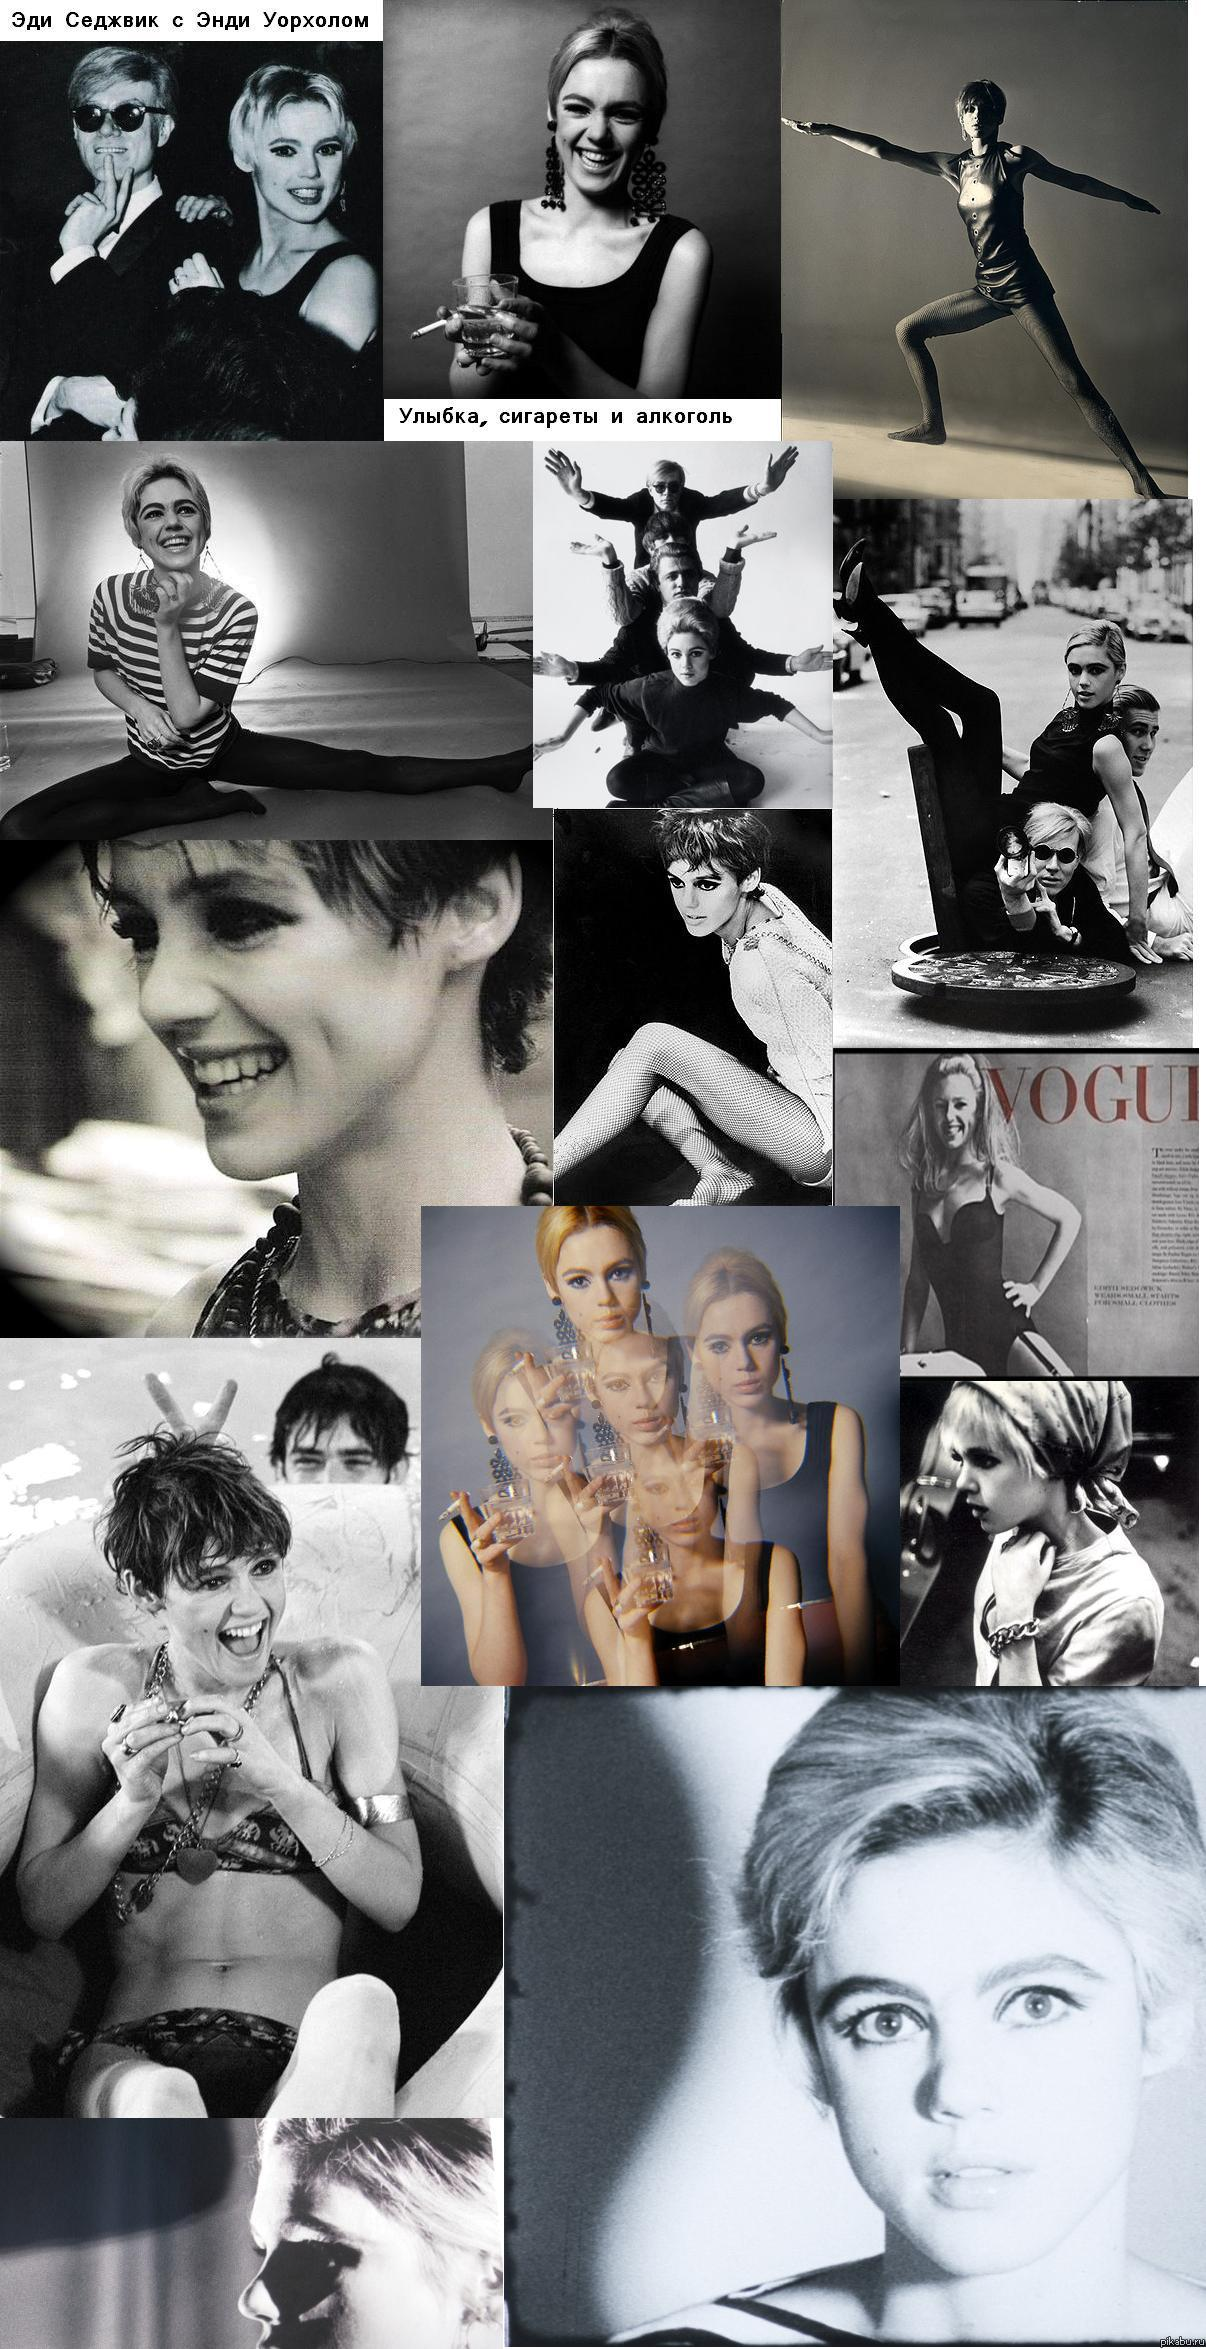 Edie sedgwick death photo For These Orthodox Jewish Designers, Leopard Print is the New